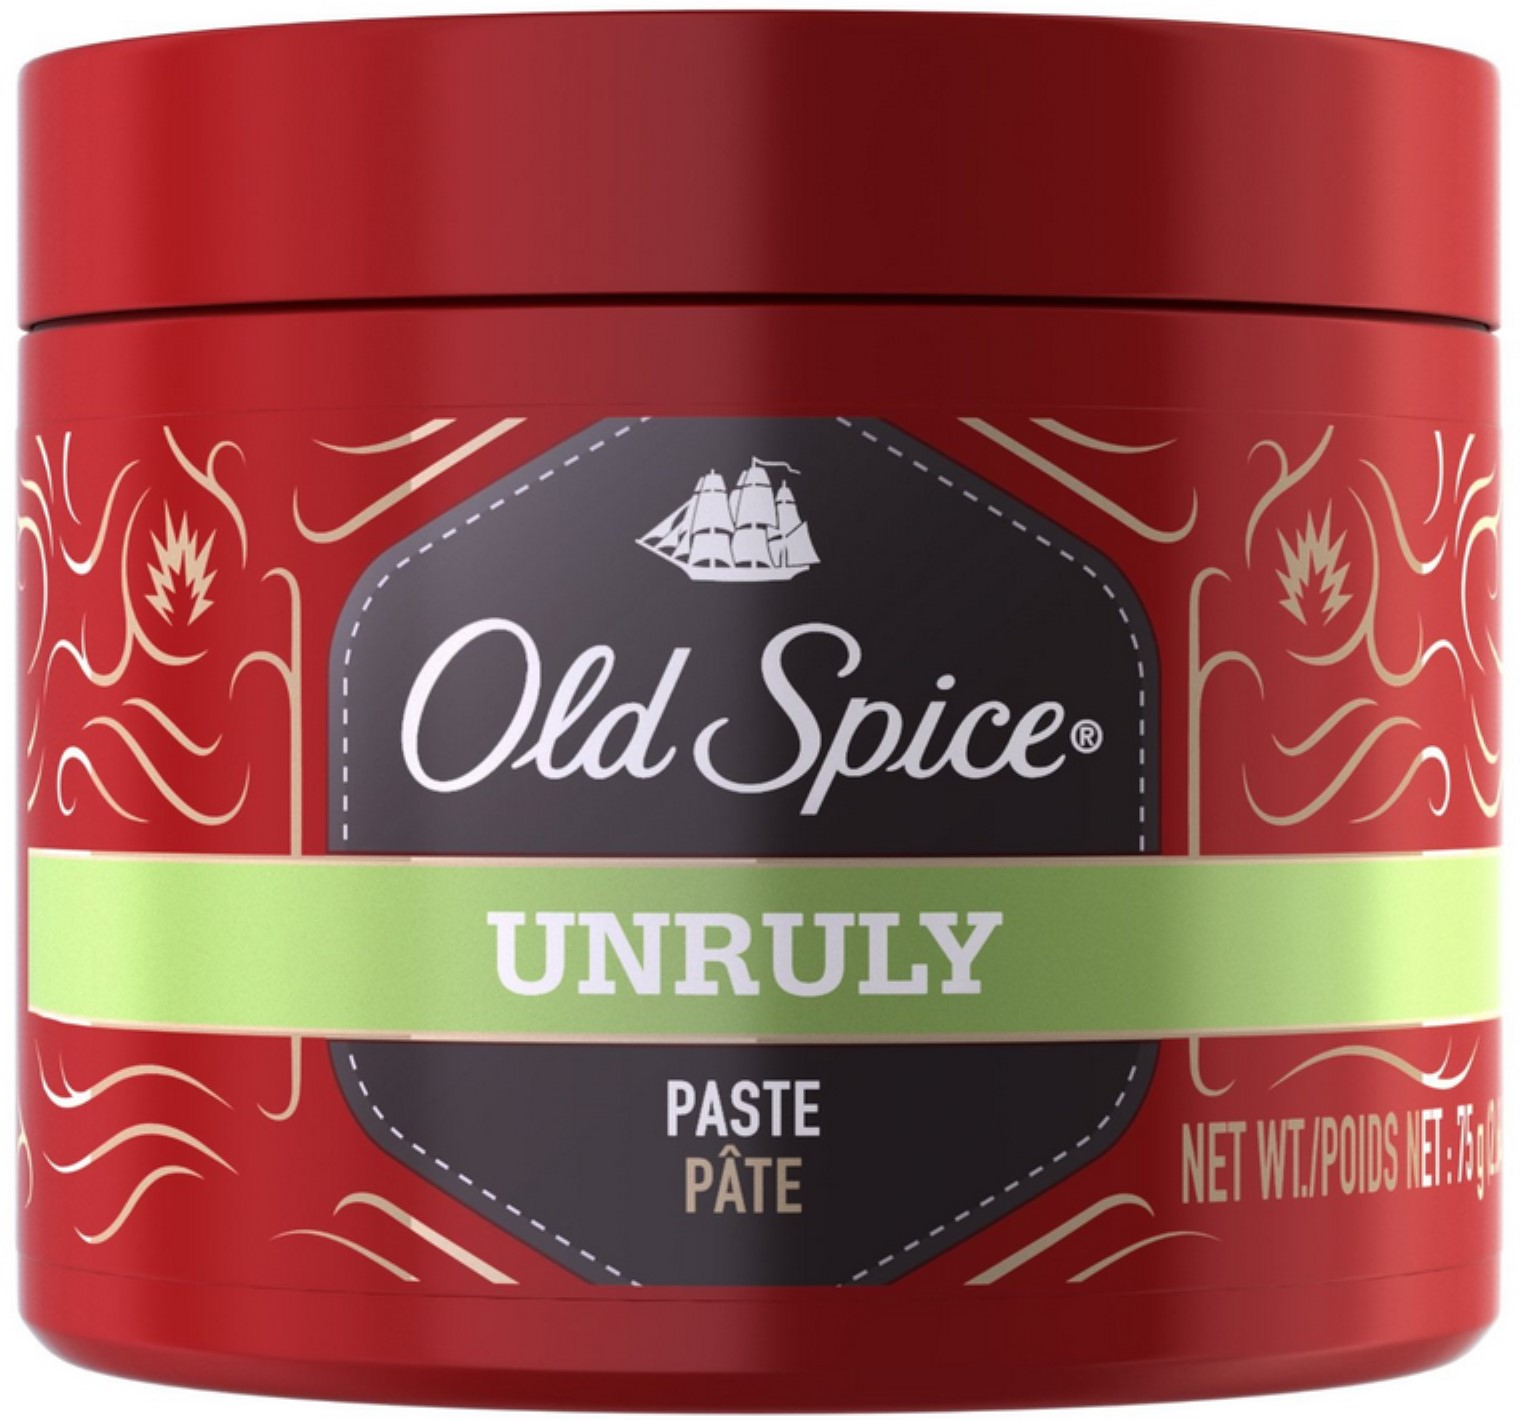 Old Spice Styler Unruly Paste 1 ea